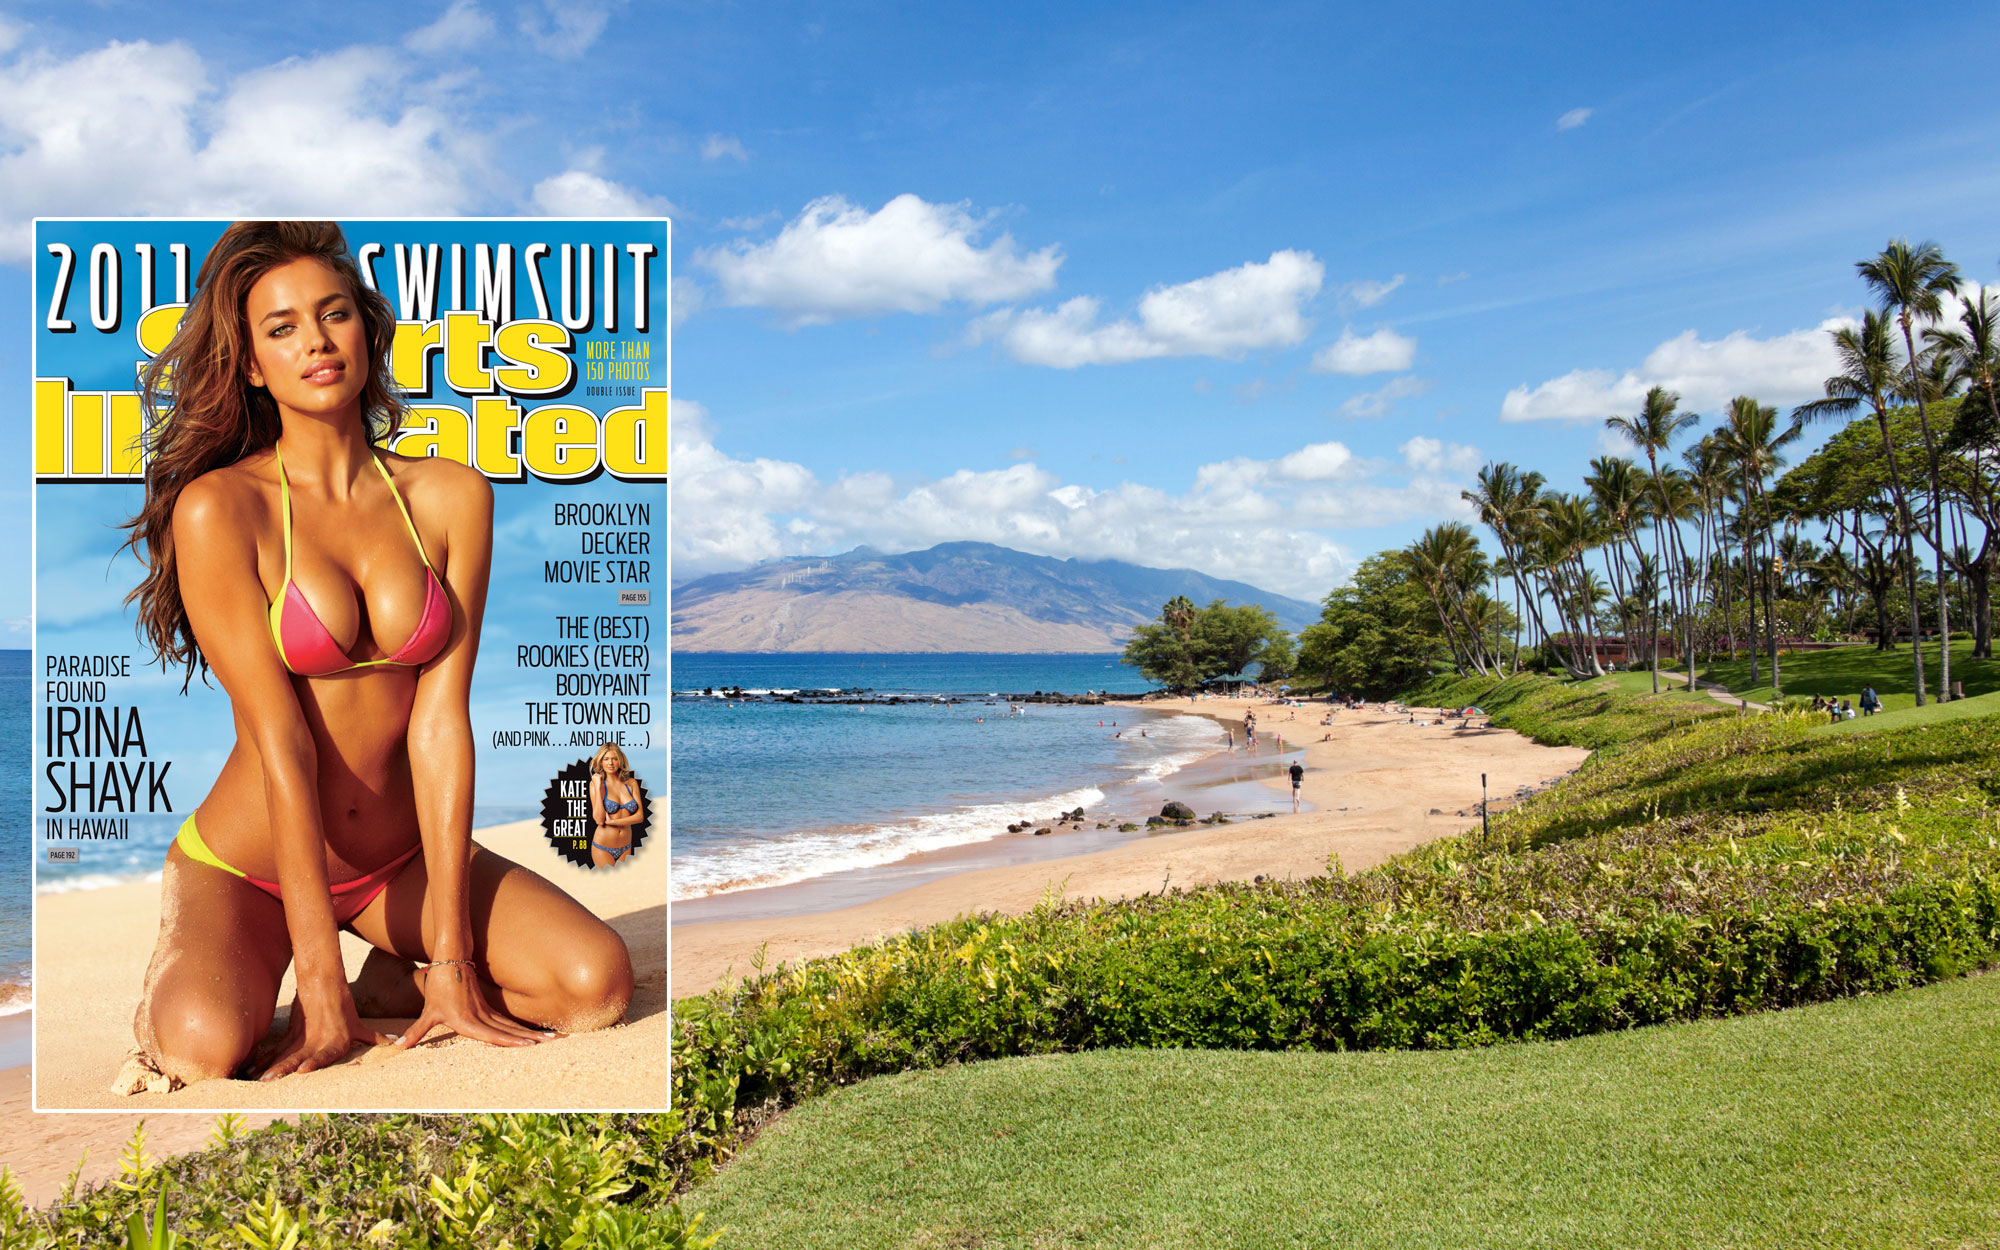 SI Swimsuit 2011: Grand Wailea, Maui, Hawaii